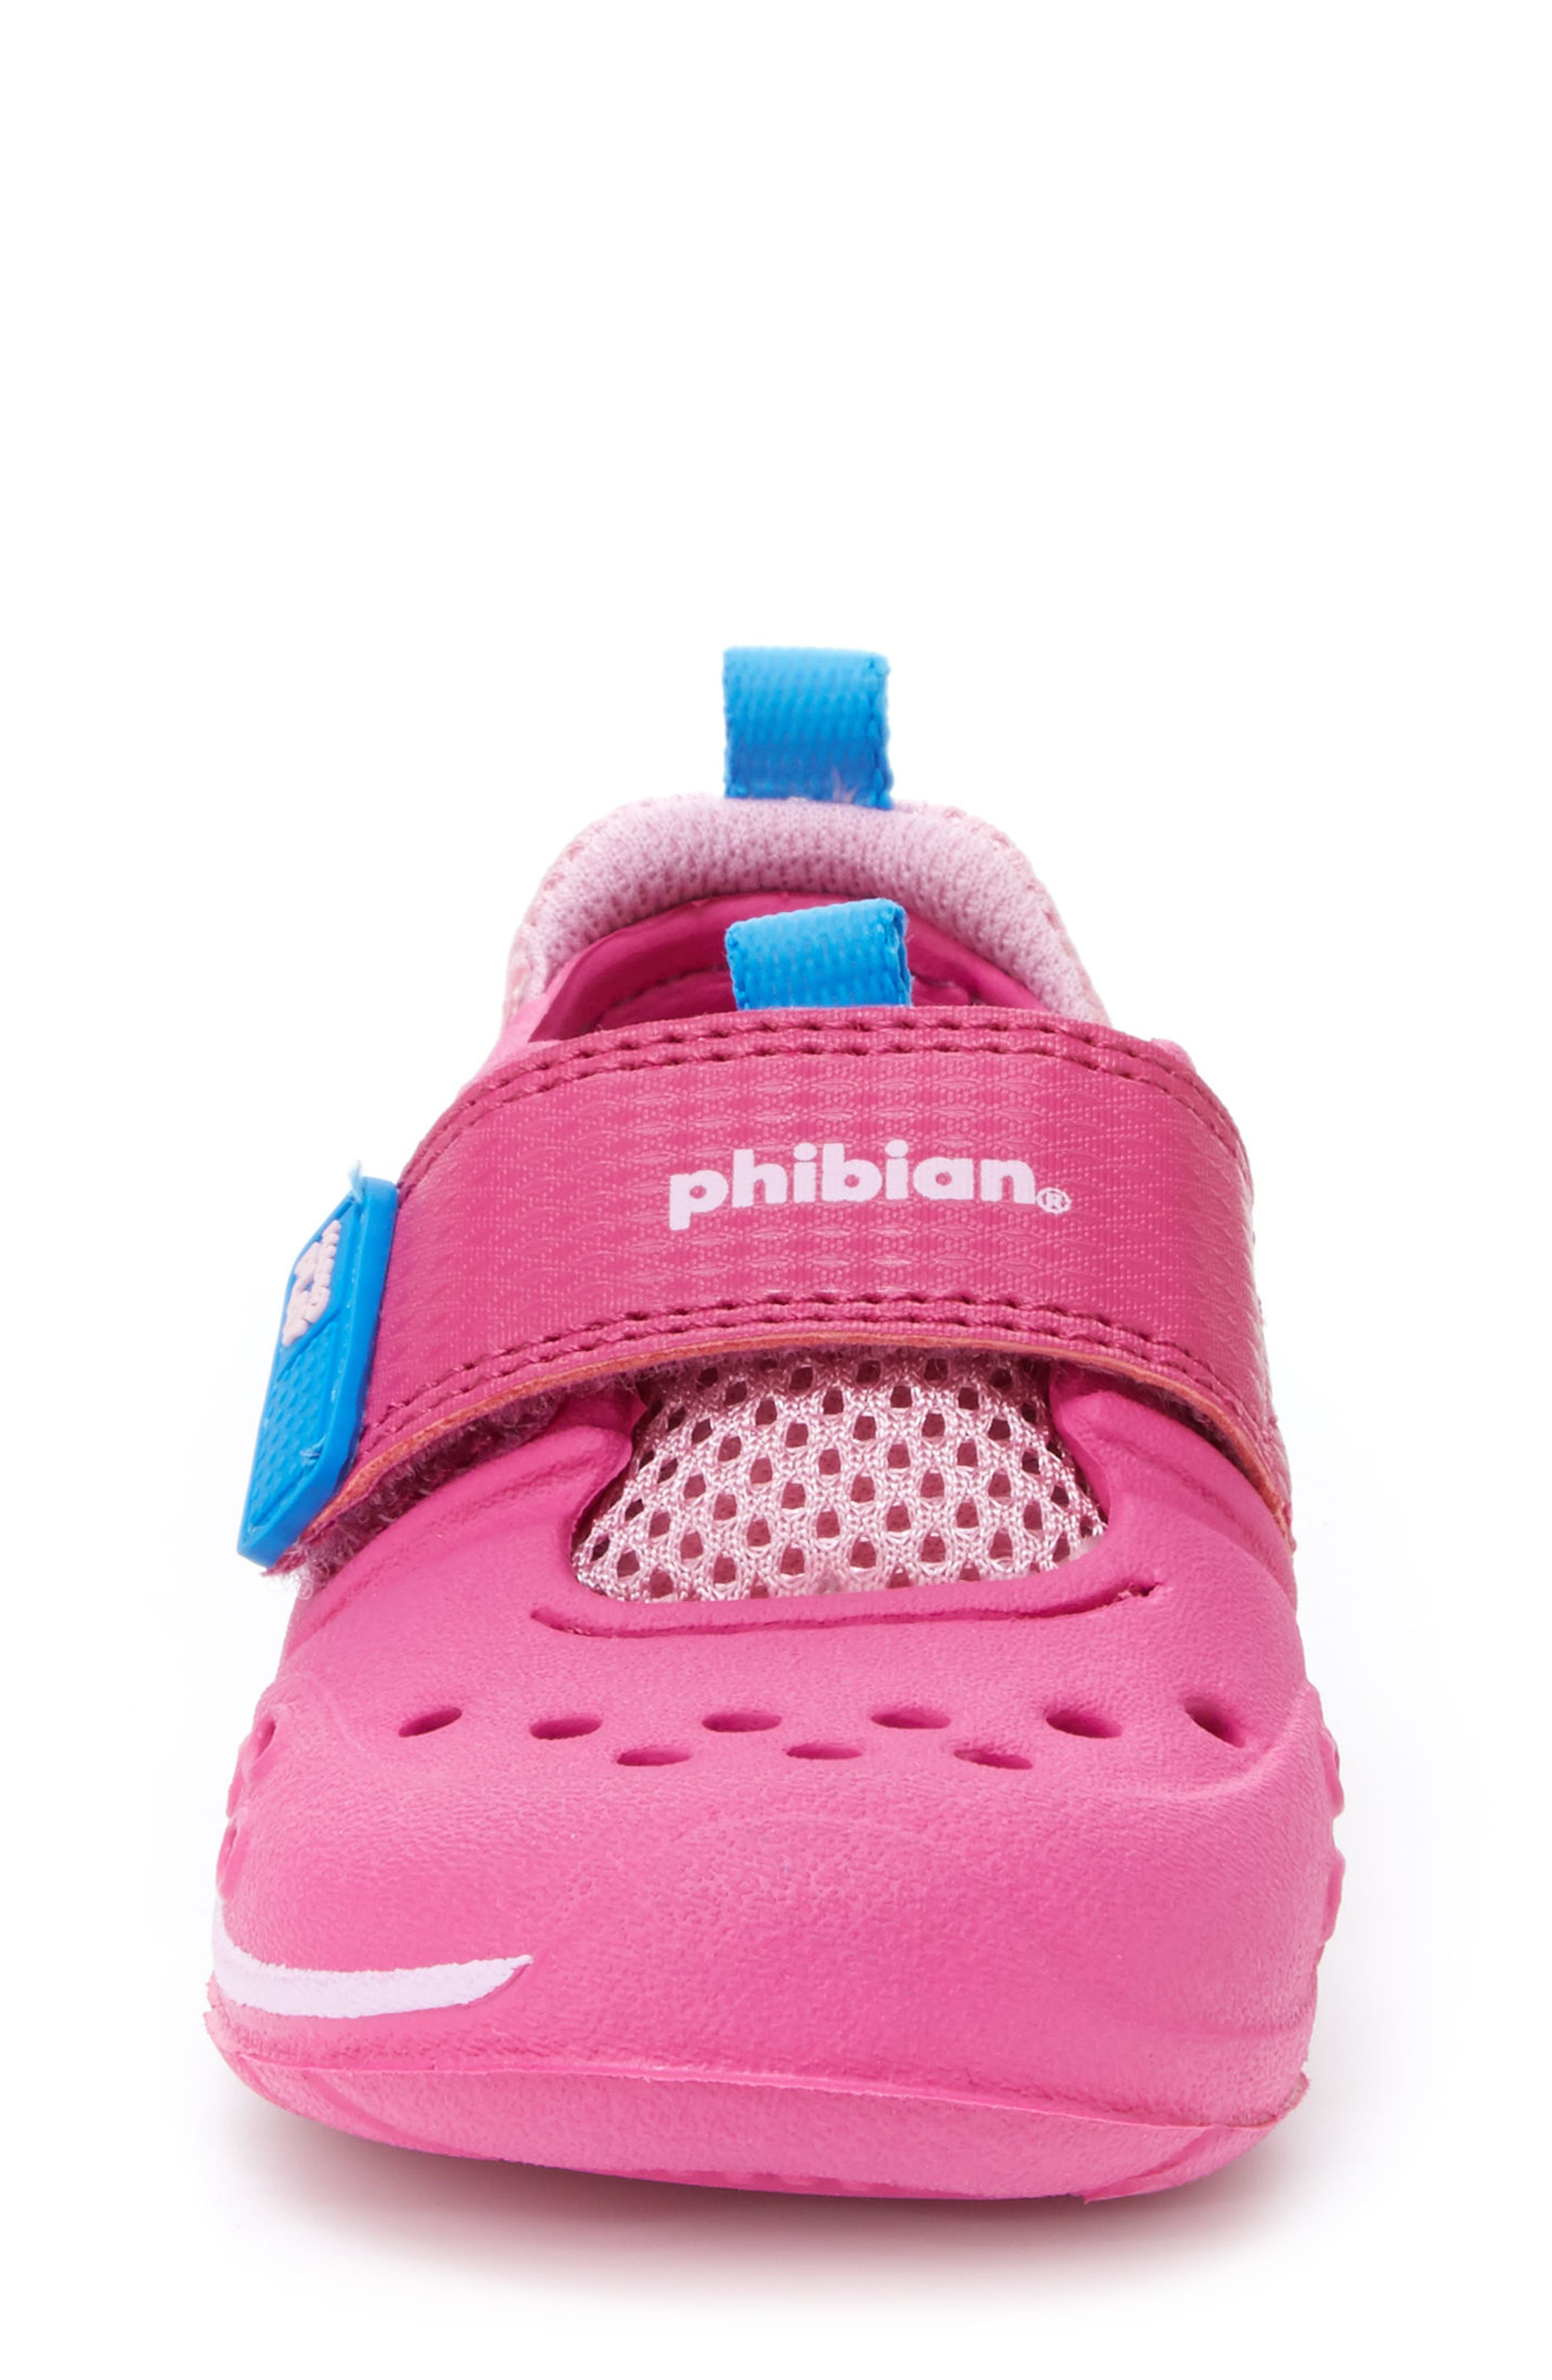 ,                             Made2Play<sup>®</sup> Phibian Sneaker,                             Alternate thumbnail 32, color,                             650